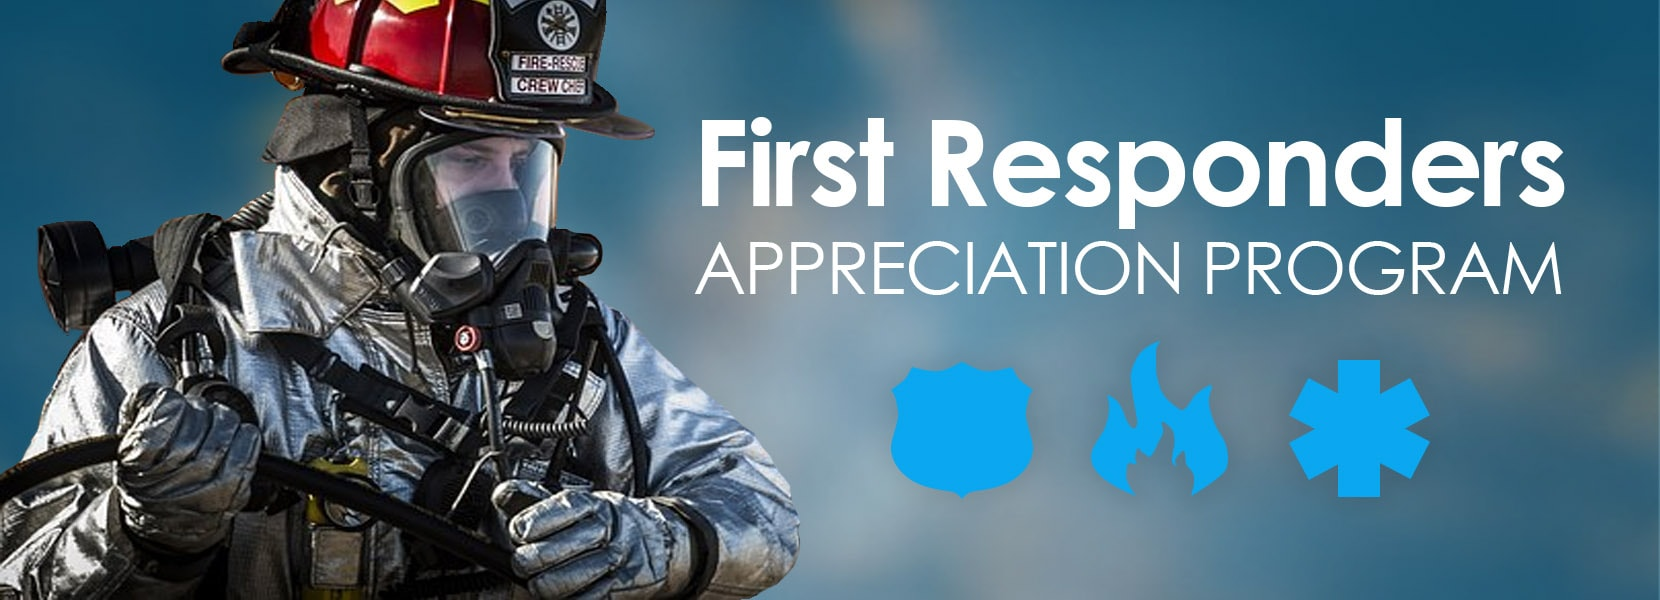 Ford First Responder >> Ford First Responder Appreciation Bill Macdonald Ford